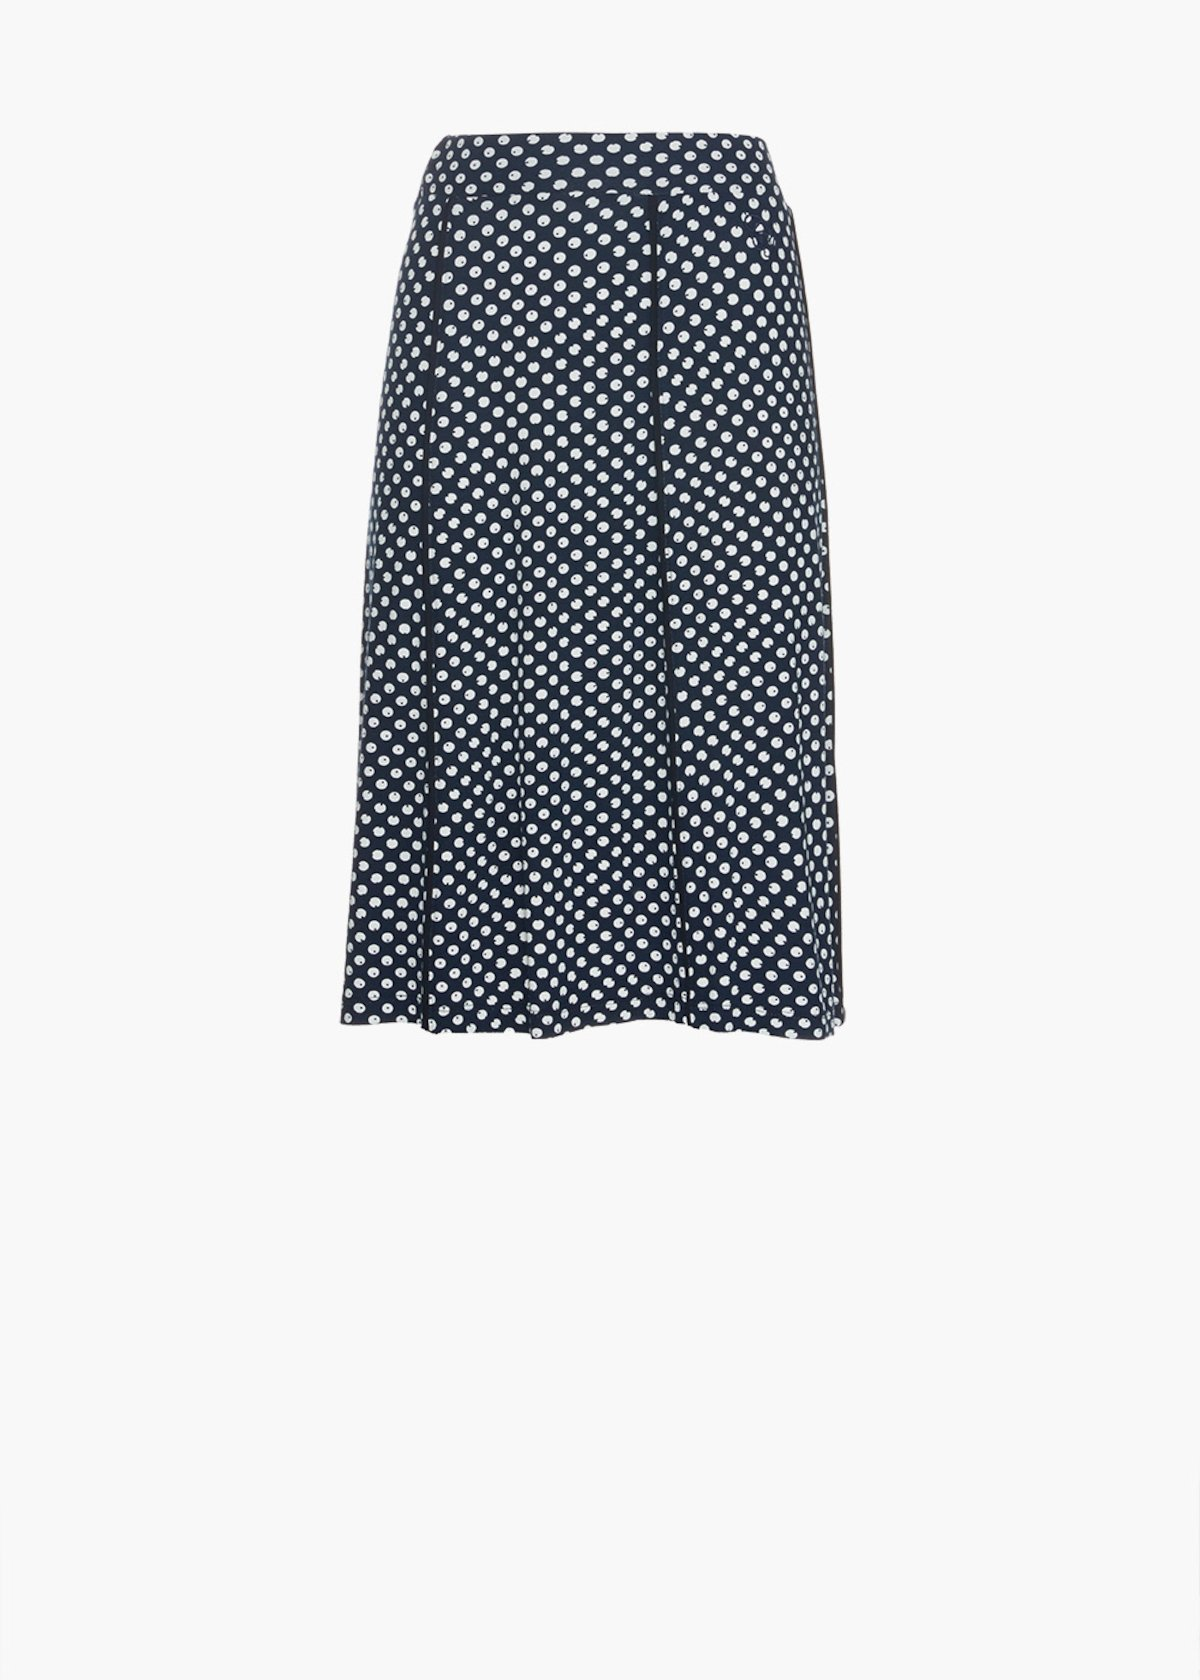 Gonna Goldys in jersey all over printed - Medium Blue / White Pois - Donna - Immagine categoria